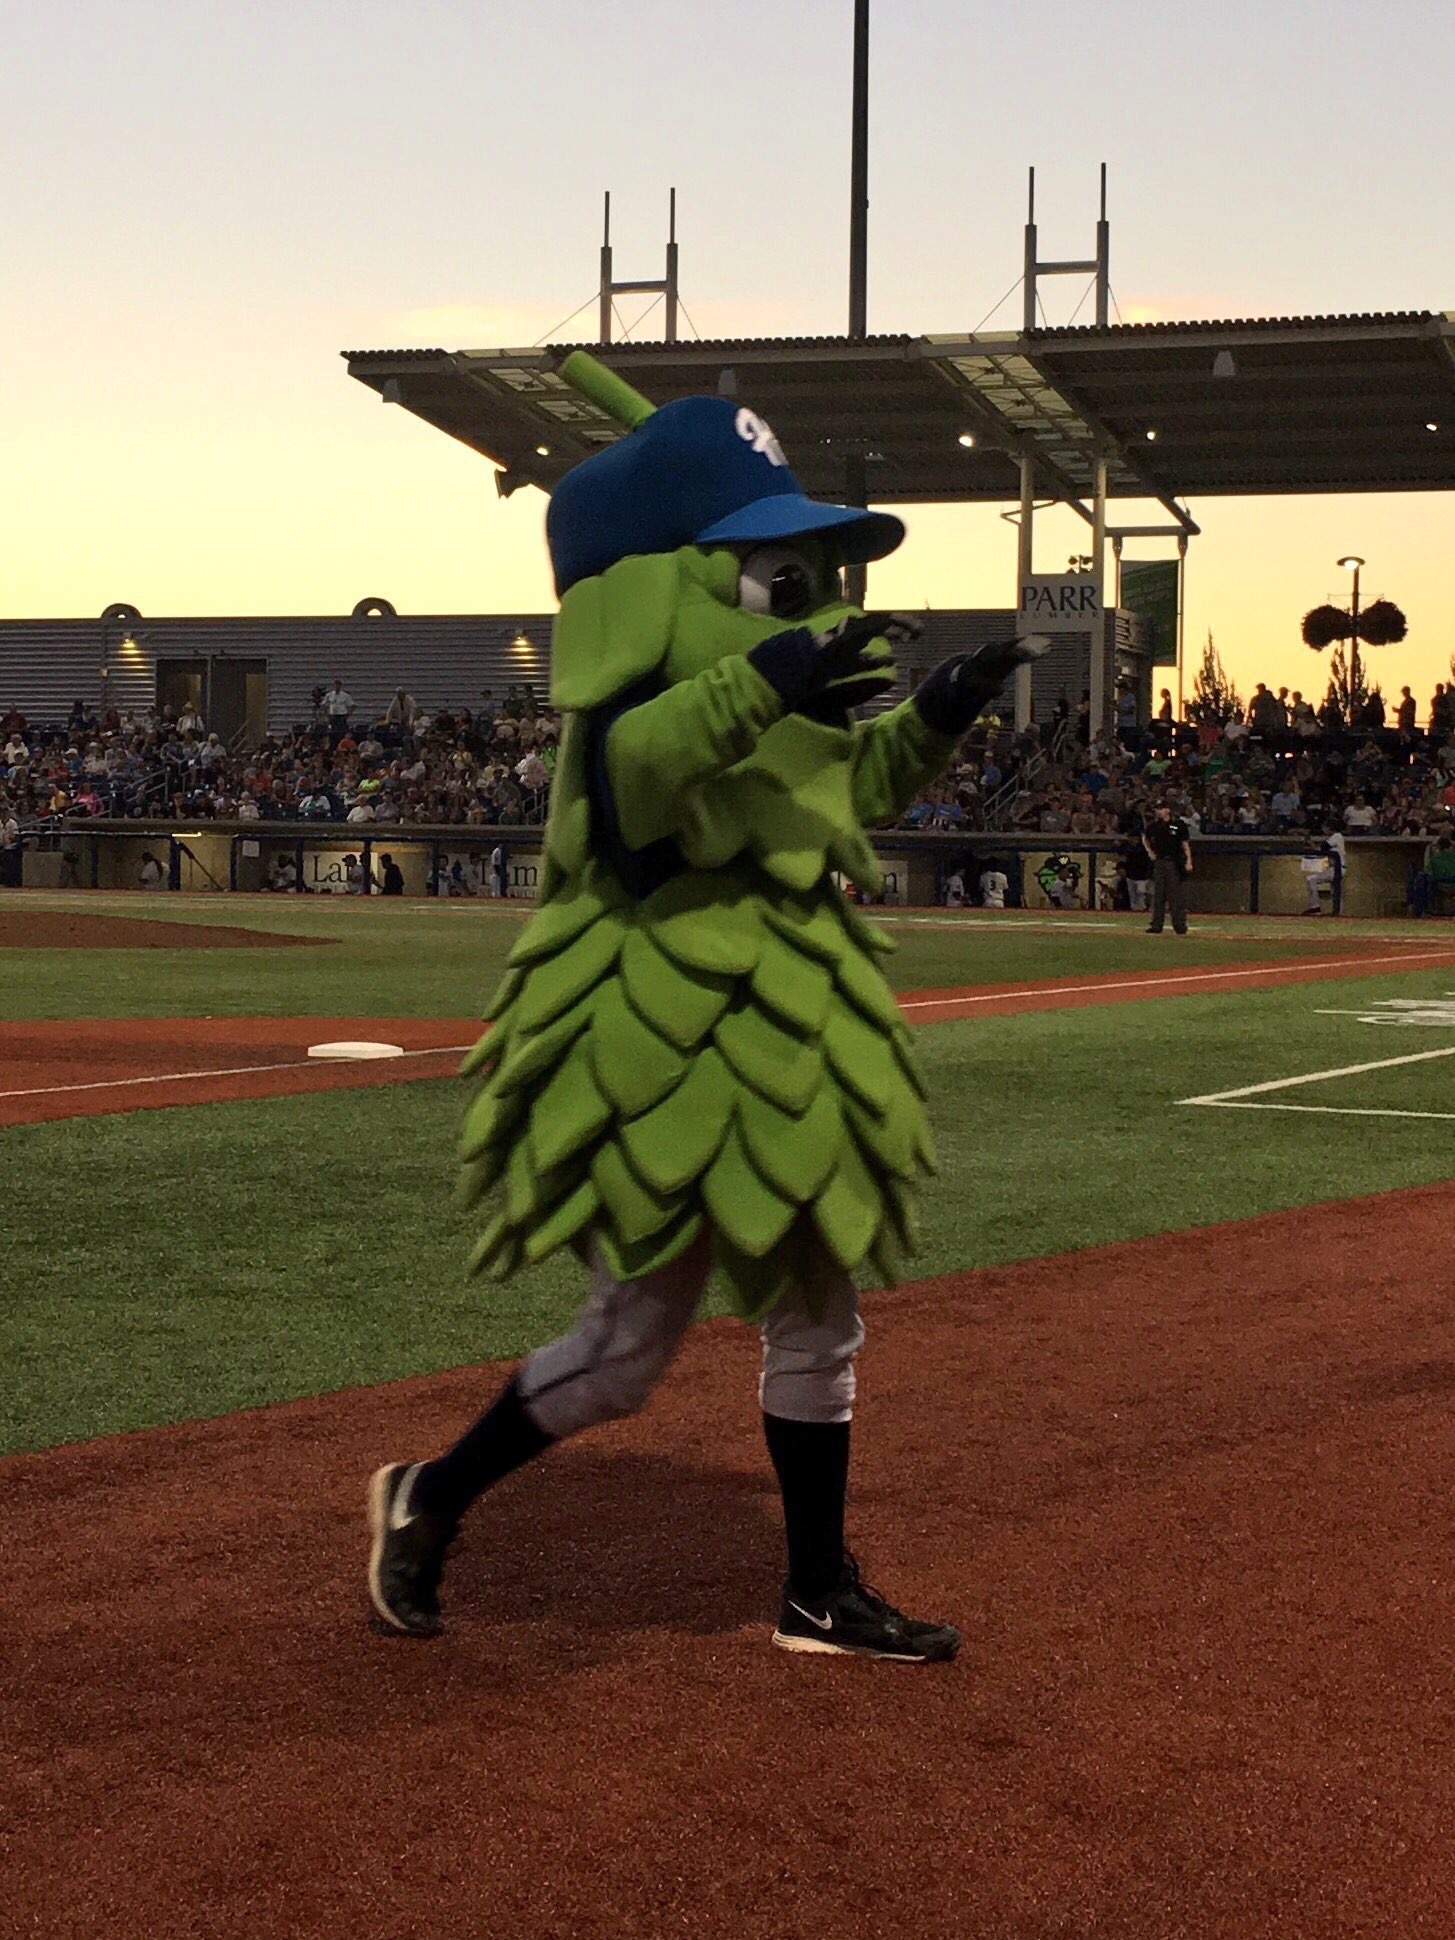 Barley the Hop, the mascot of the Hillsboro Hops.